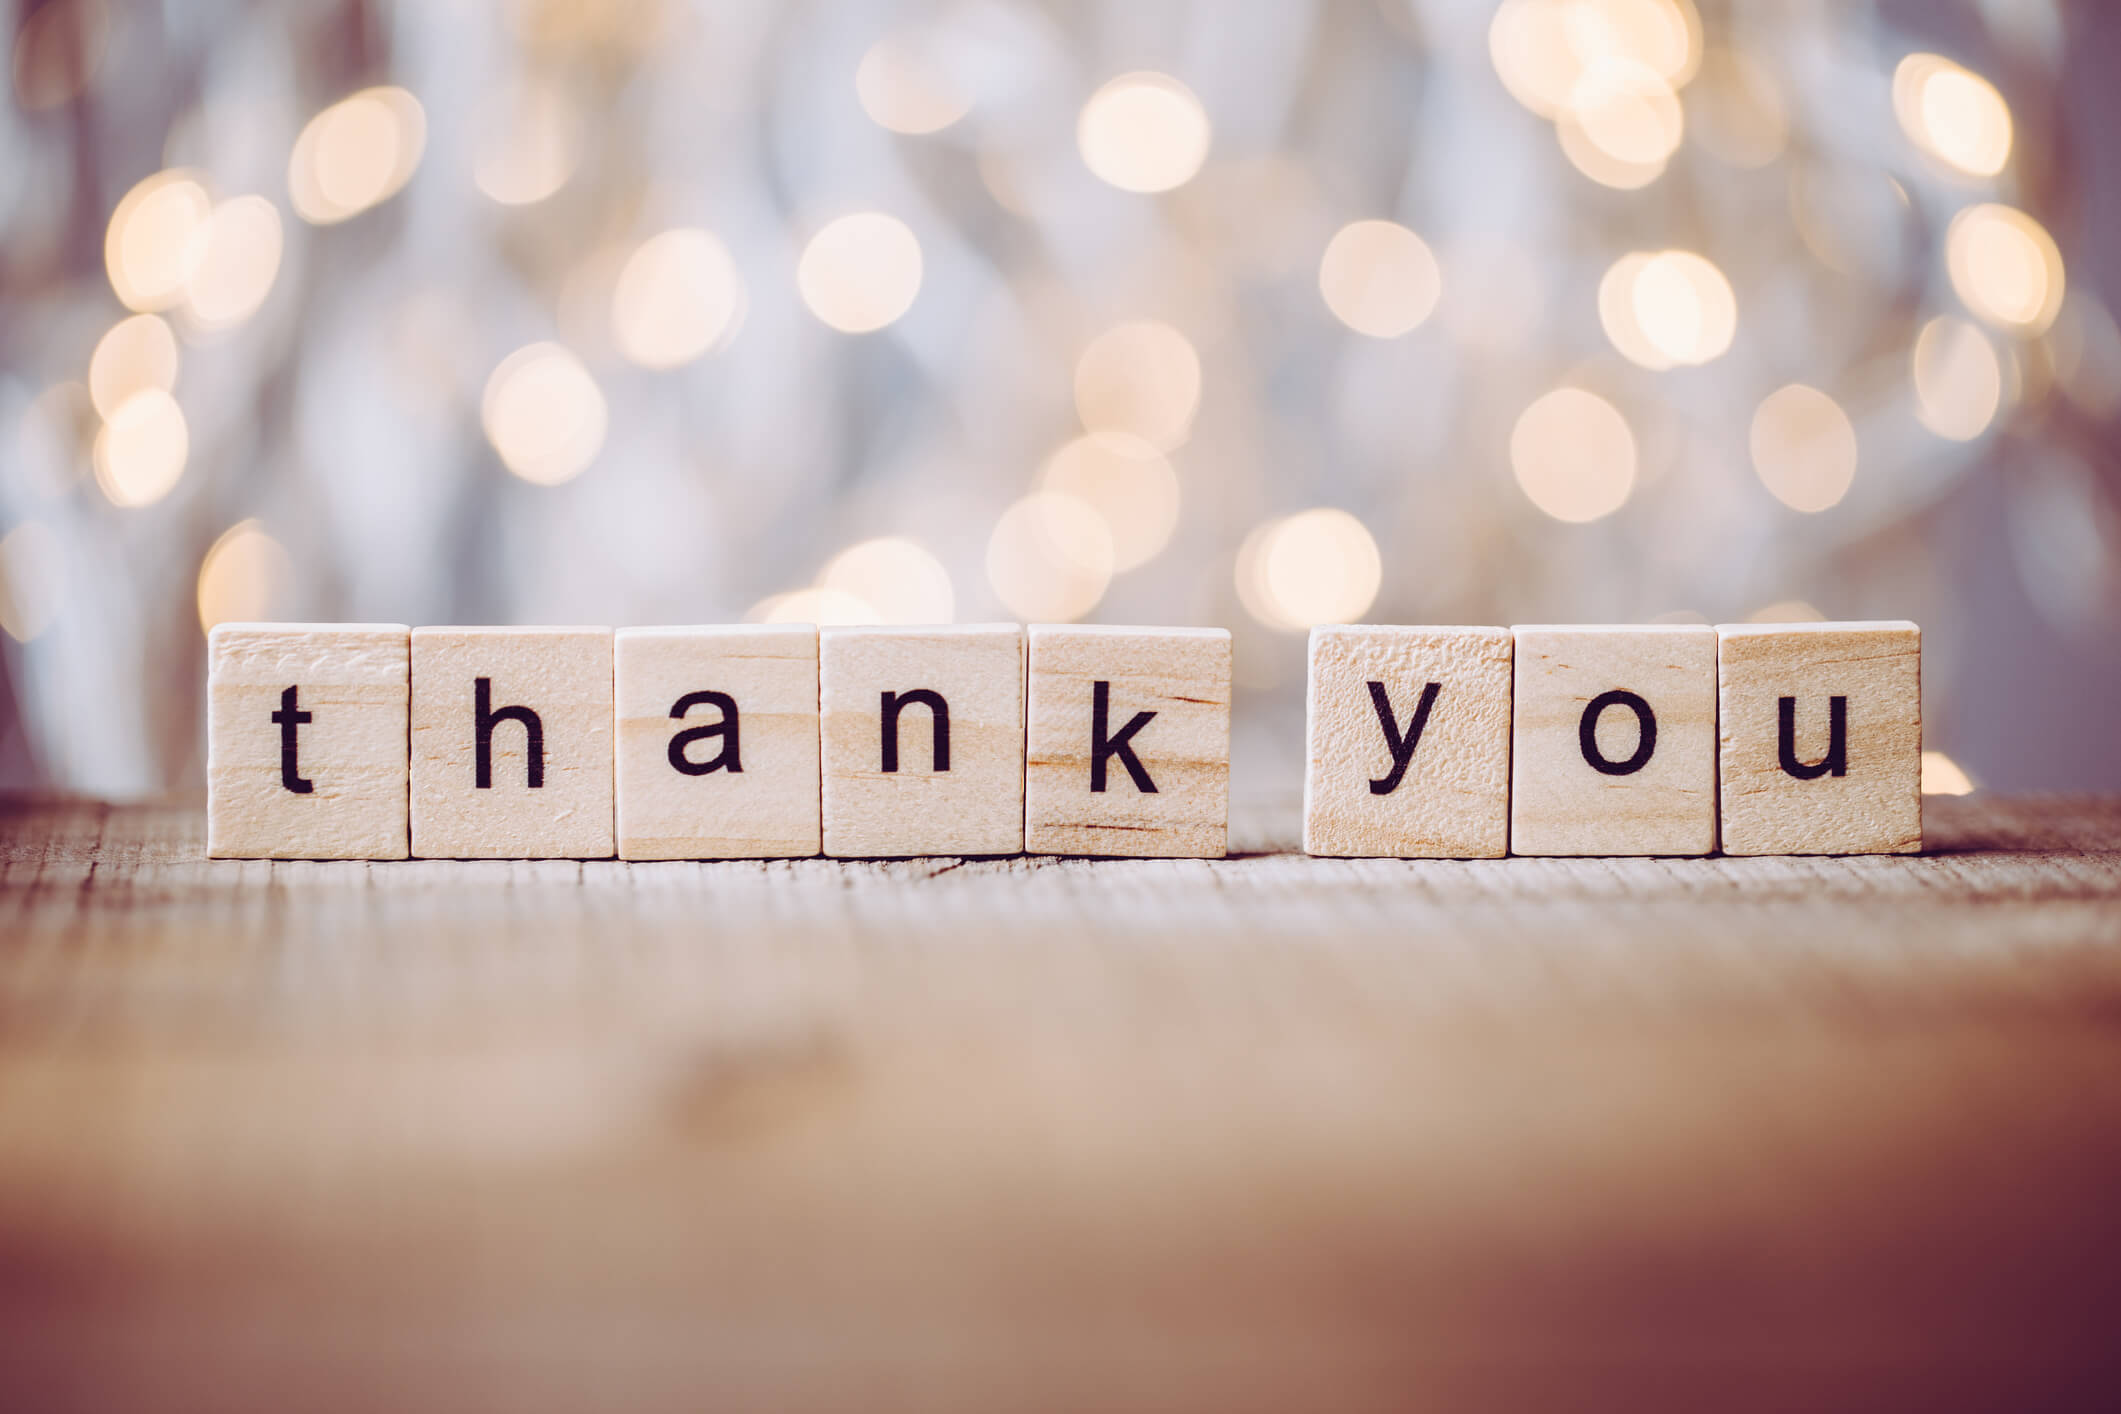 Image of previous post - 5 SIMPLE WAYS TO THANK THE CAREGIVER IN YOUR LIFE